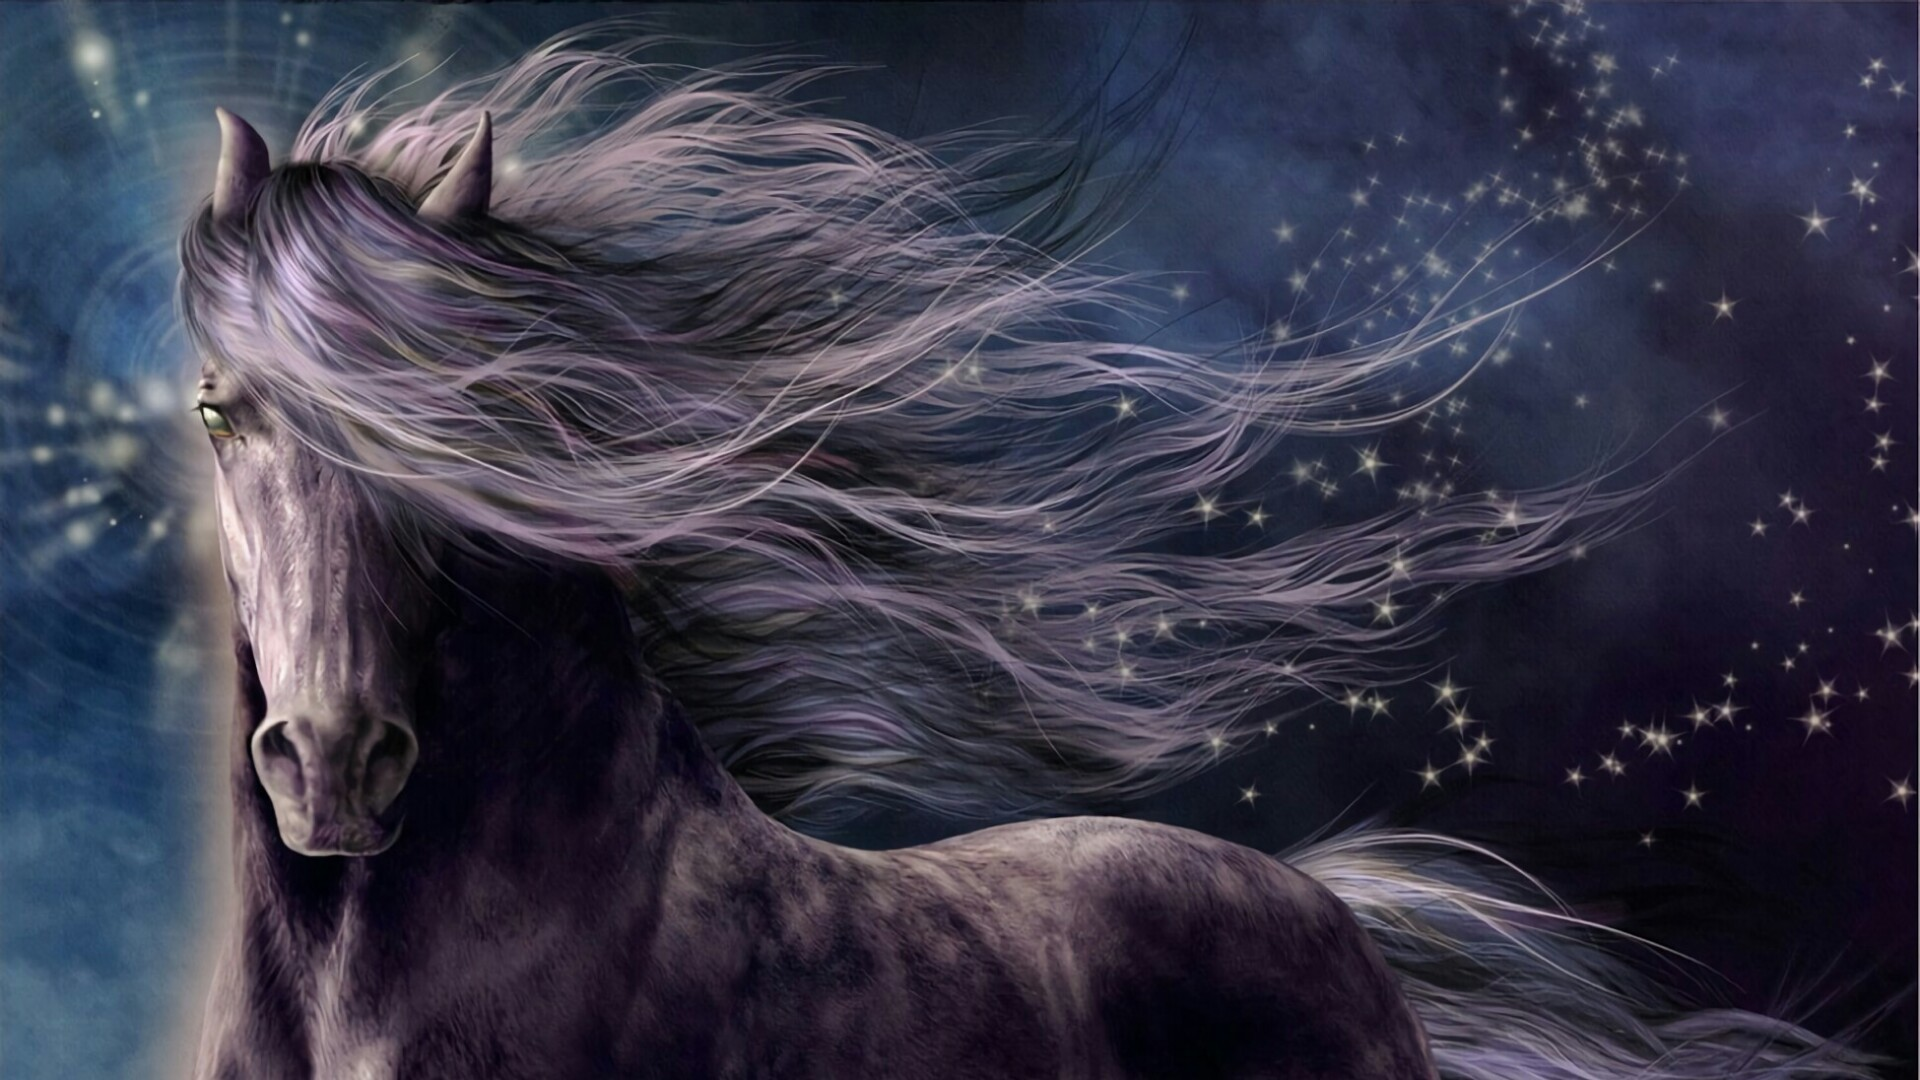 Res: 1920x1080, Dreamy Horse With Stars - Fantasy Art Wallpaper | Wallpaper Studio 10 |  Tens of thousands HD and UltraHD wallpapers for Android, Windows and Xbox